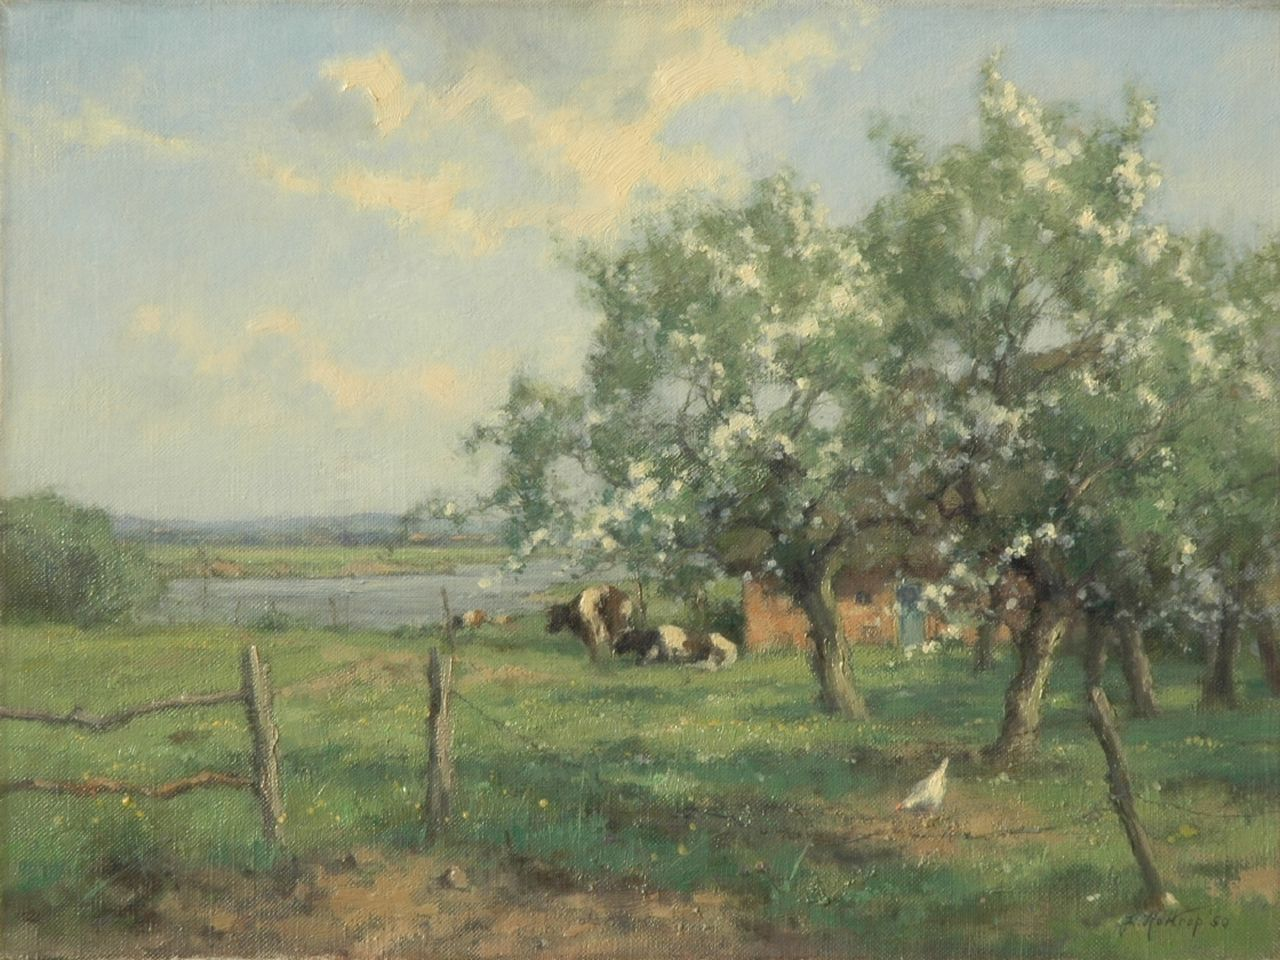 Holtrup J.  | Jan Holtrup, Spring, oil on canvas 30.3 x 40.3 cm, signed l.r. and dated '50